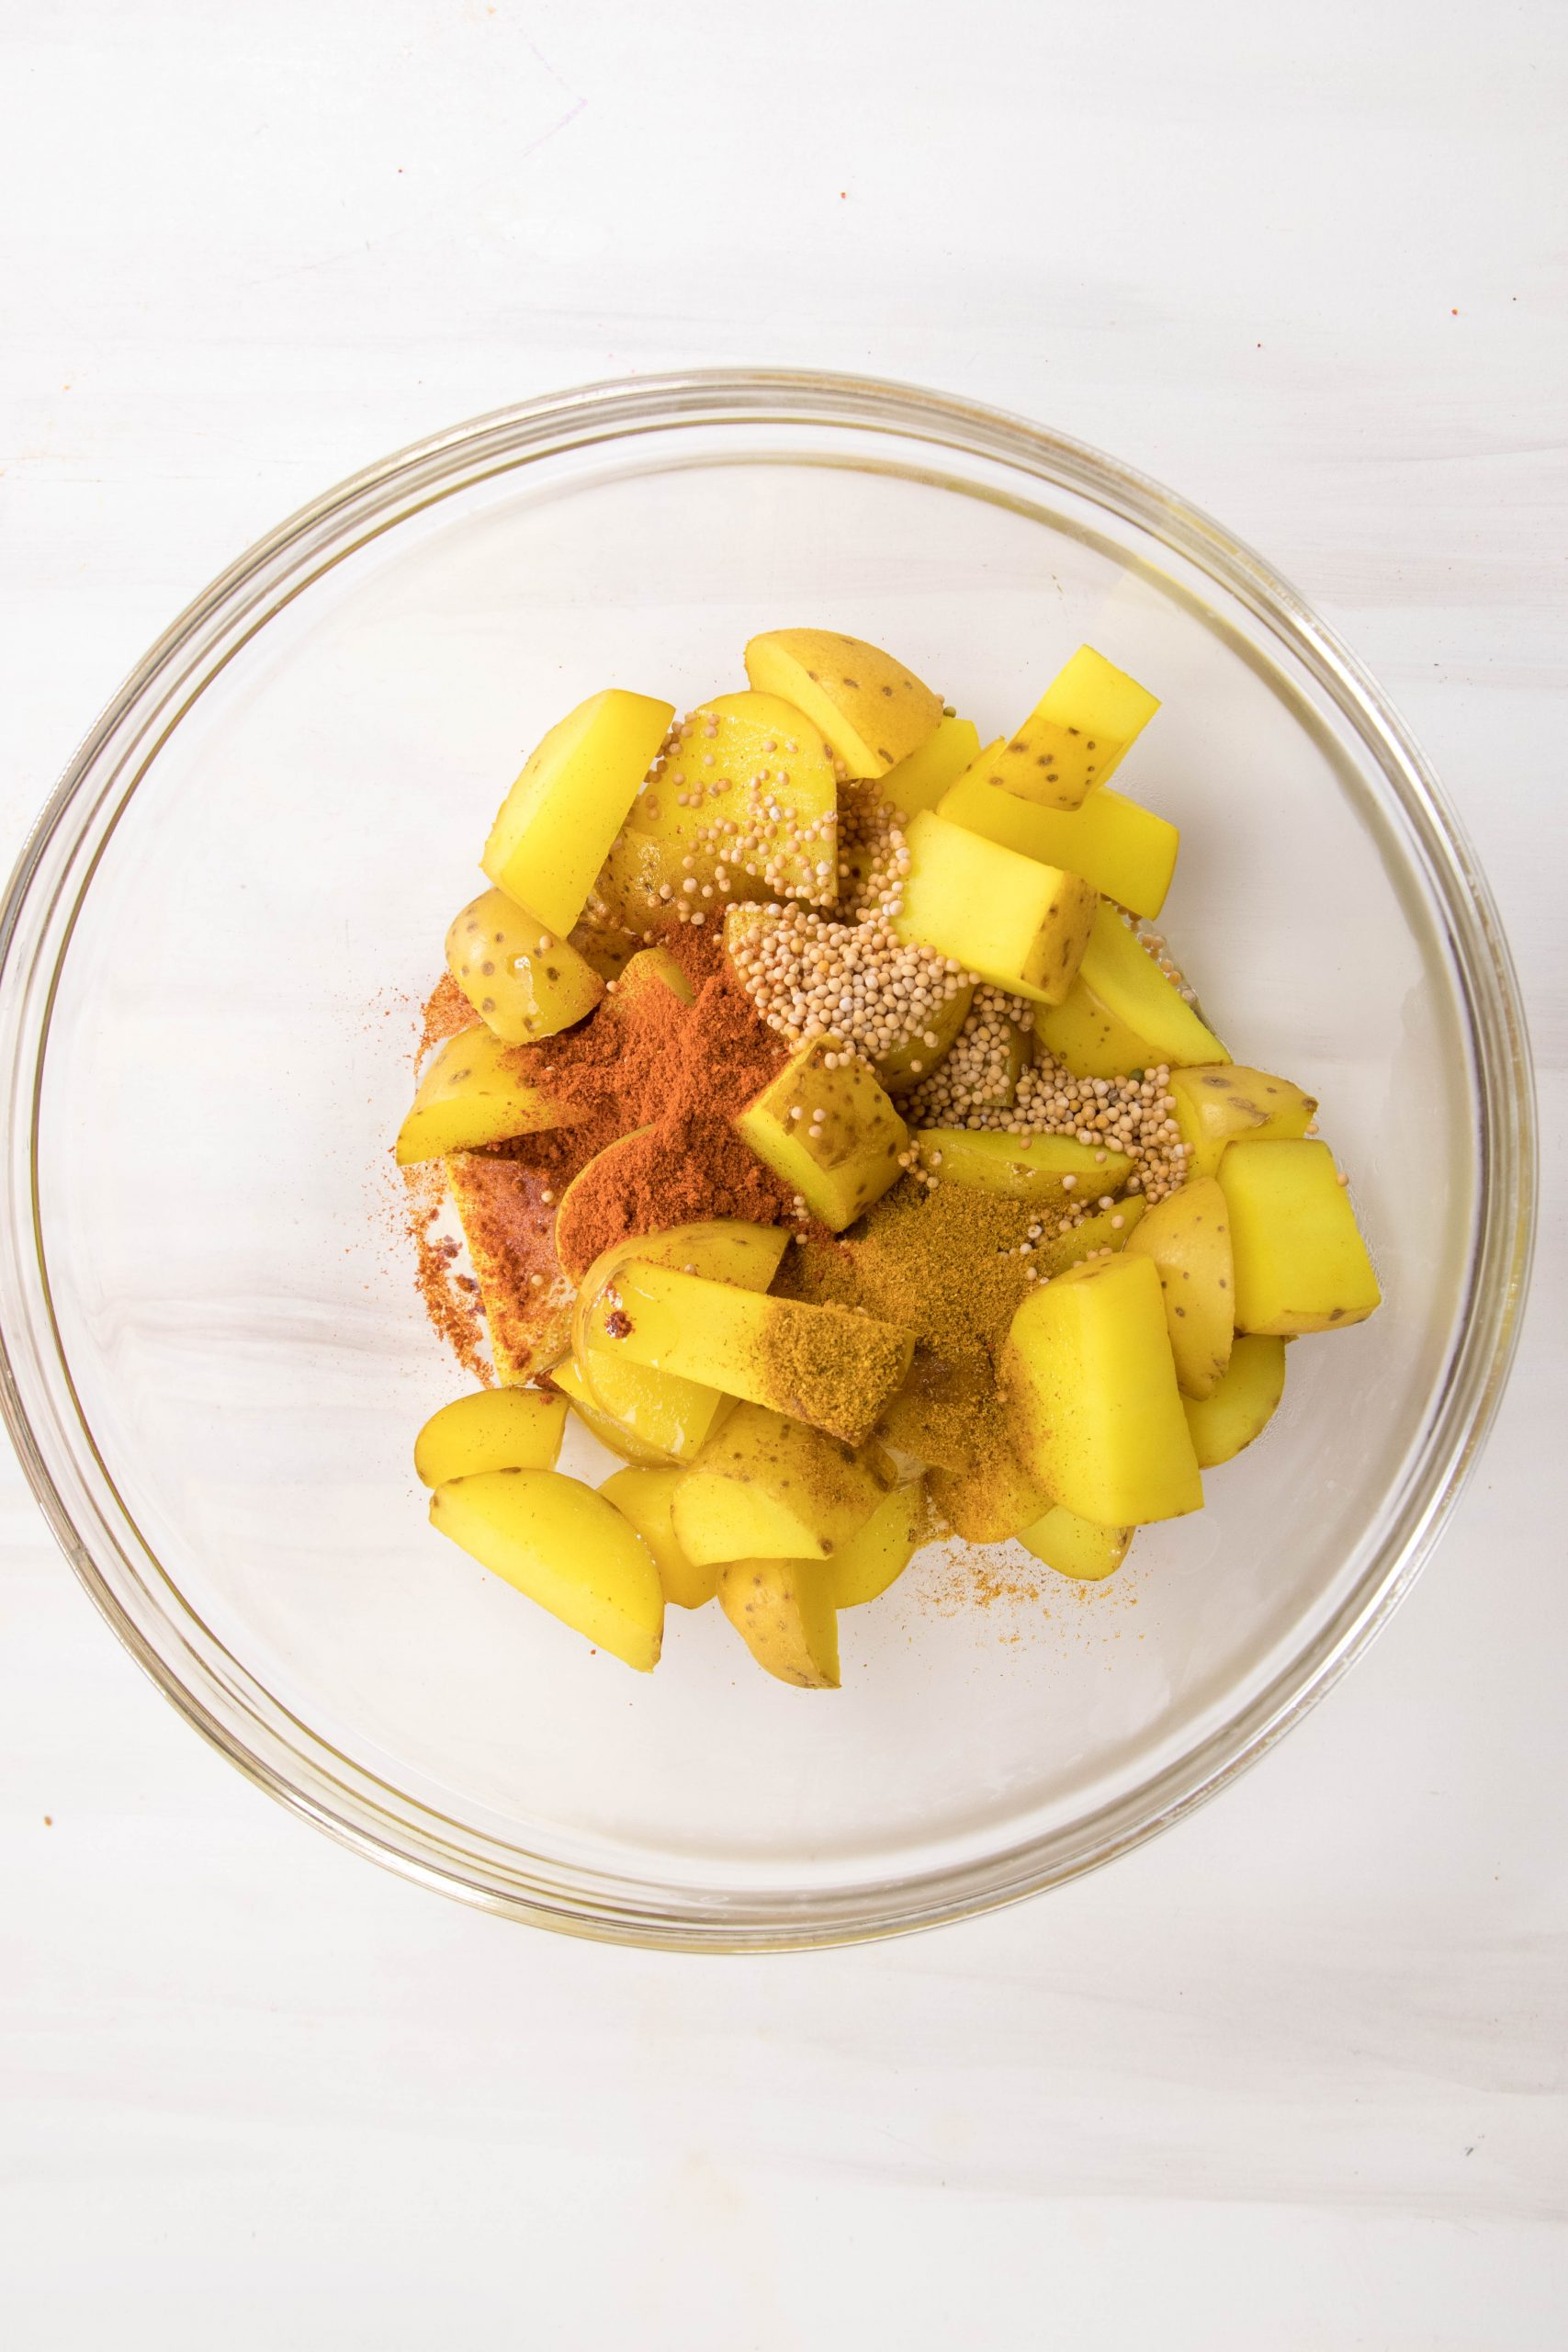 A glass bowl of cut potatoes and spices.